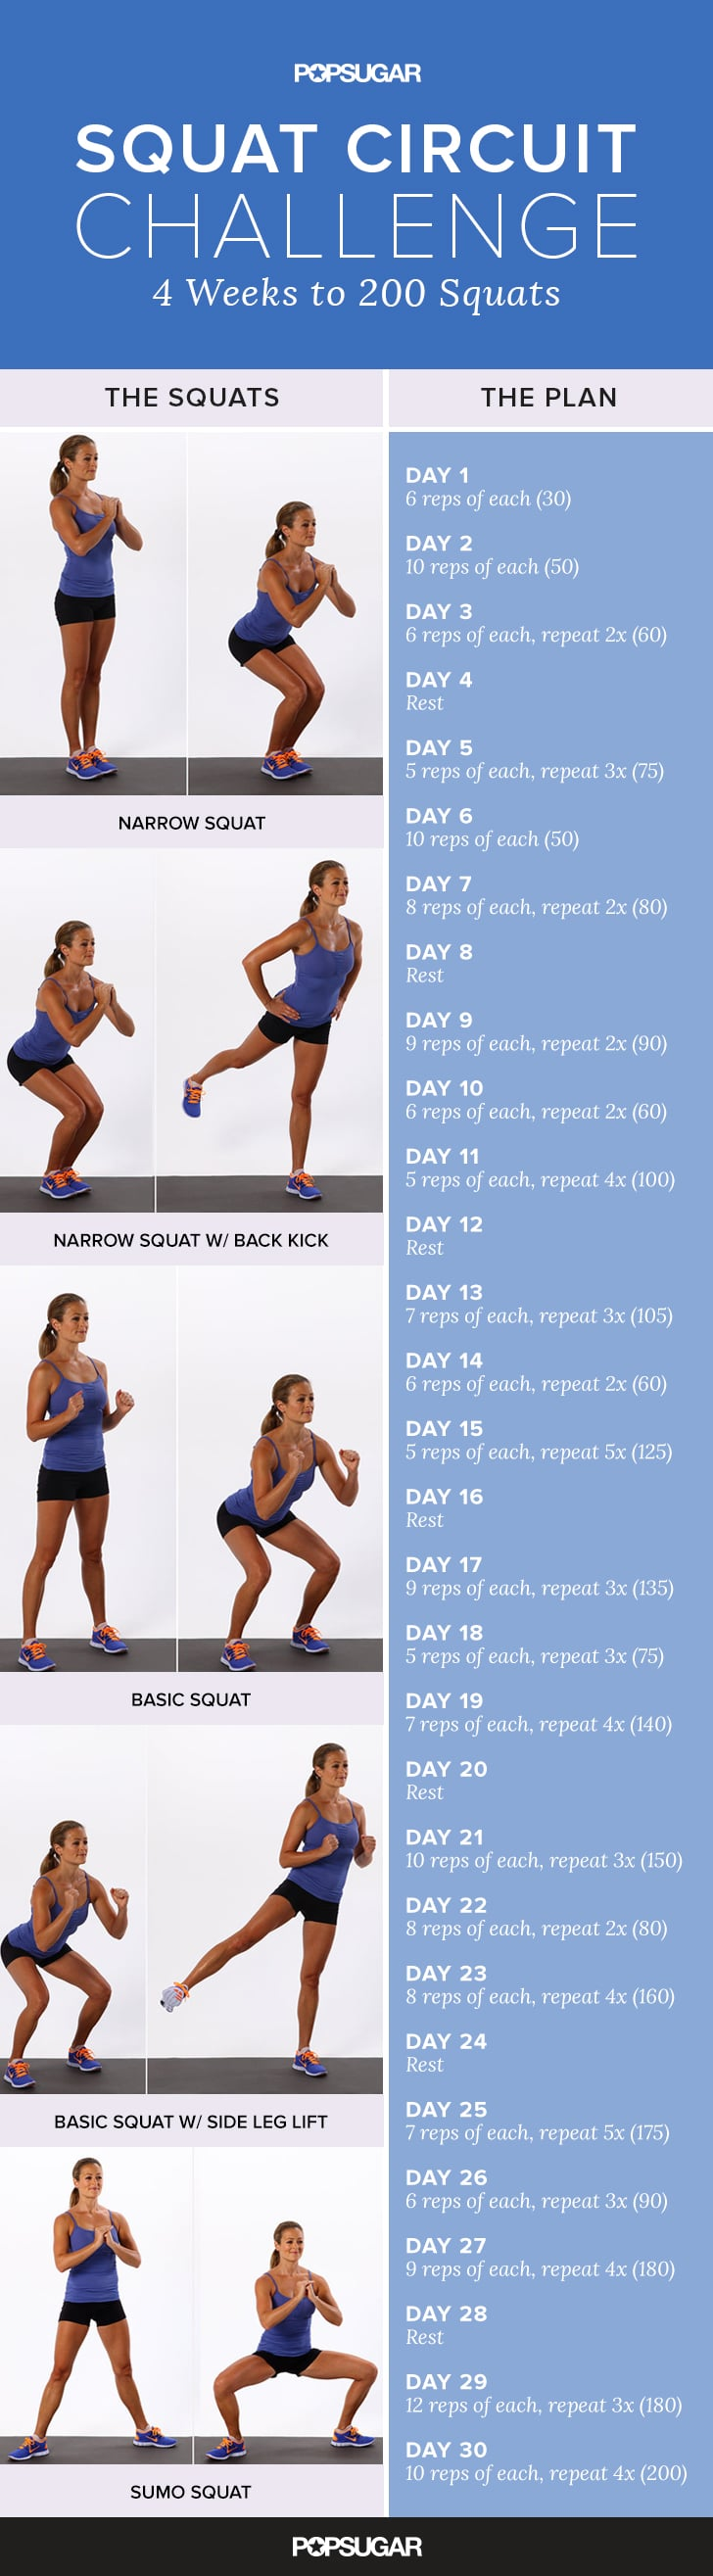 picture regarding 30 Day Squat Challenge Printable named Printable Squat Issue POPSUGAR Health and fitness